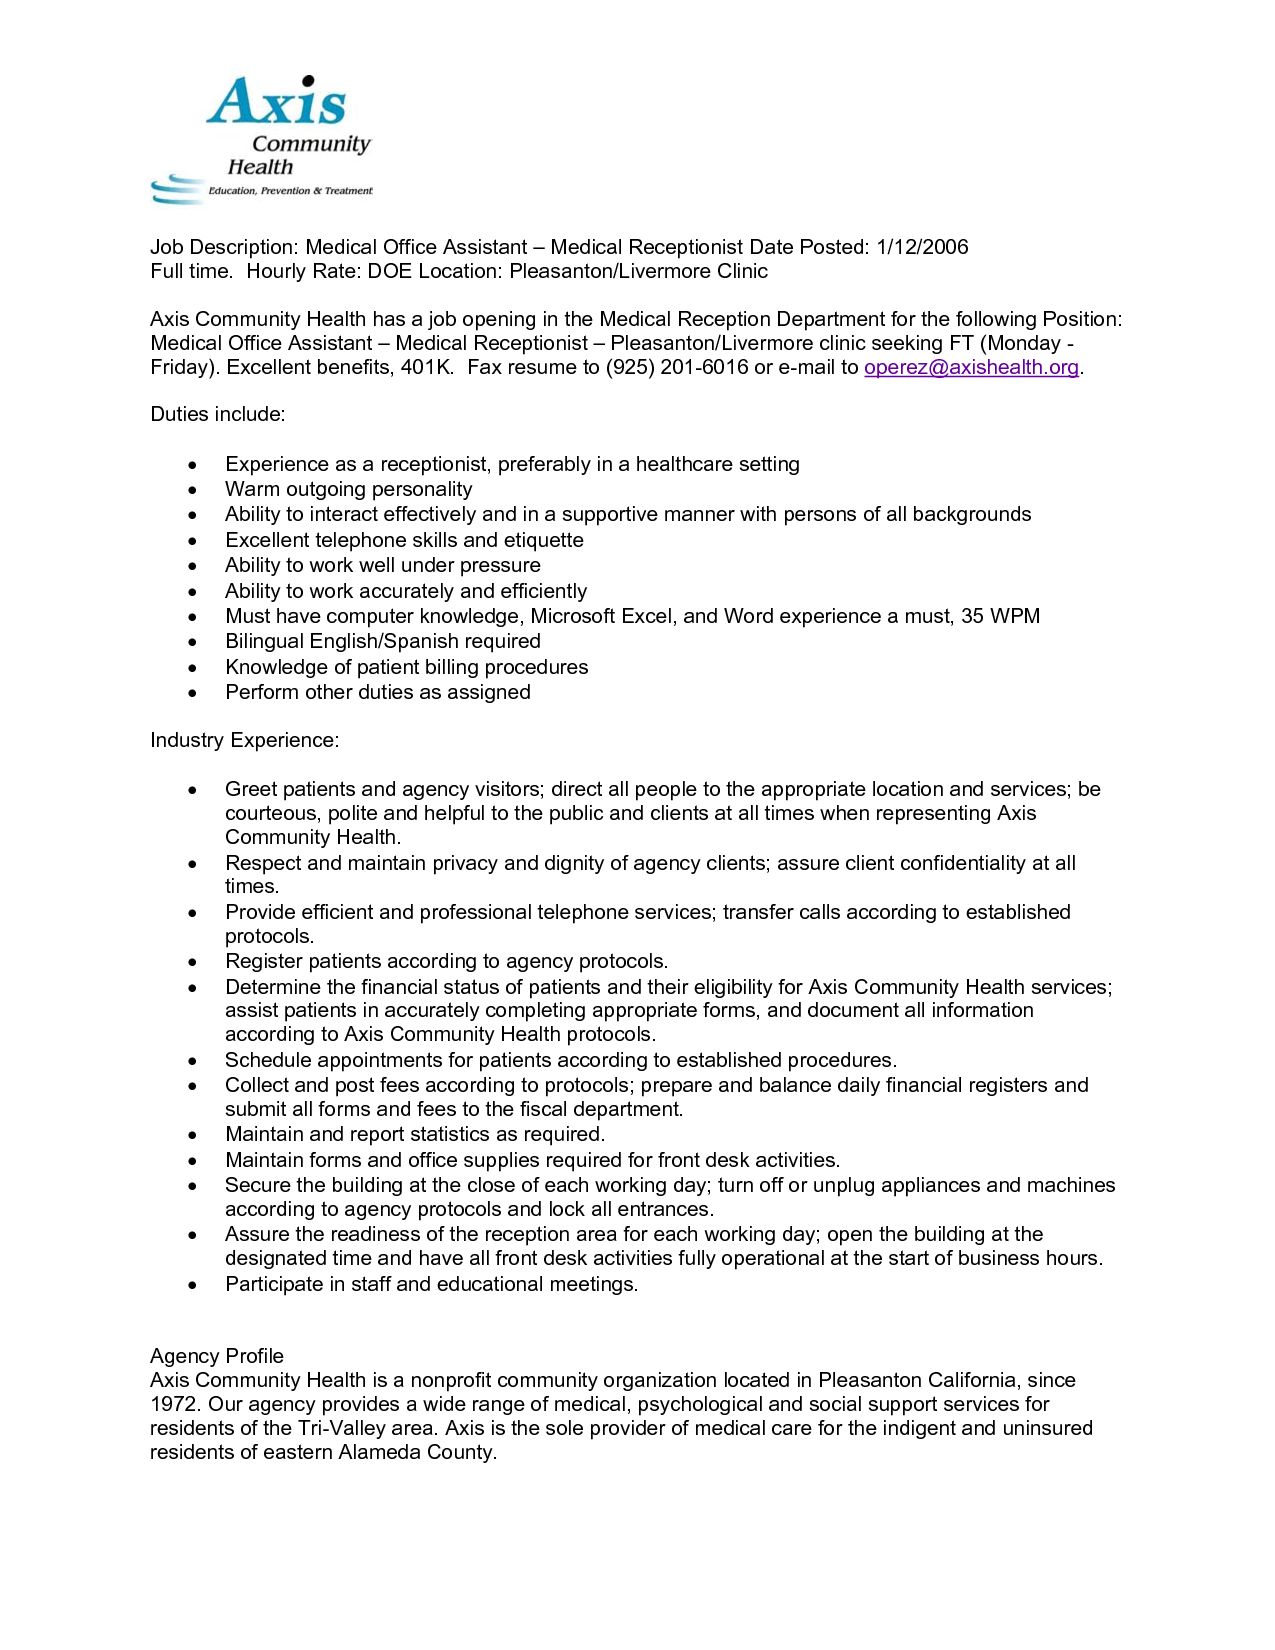 Receptionist Resume Duties Medical Receptionist Job Description